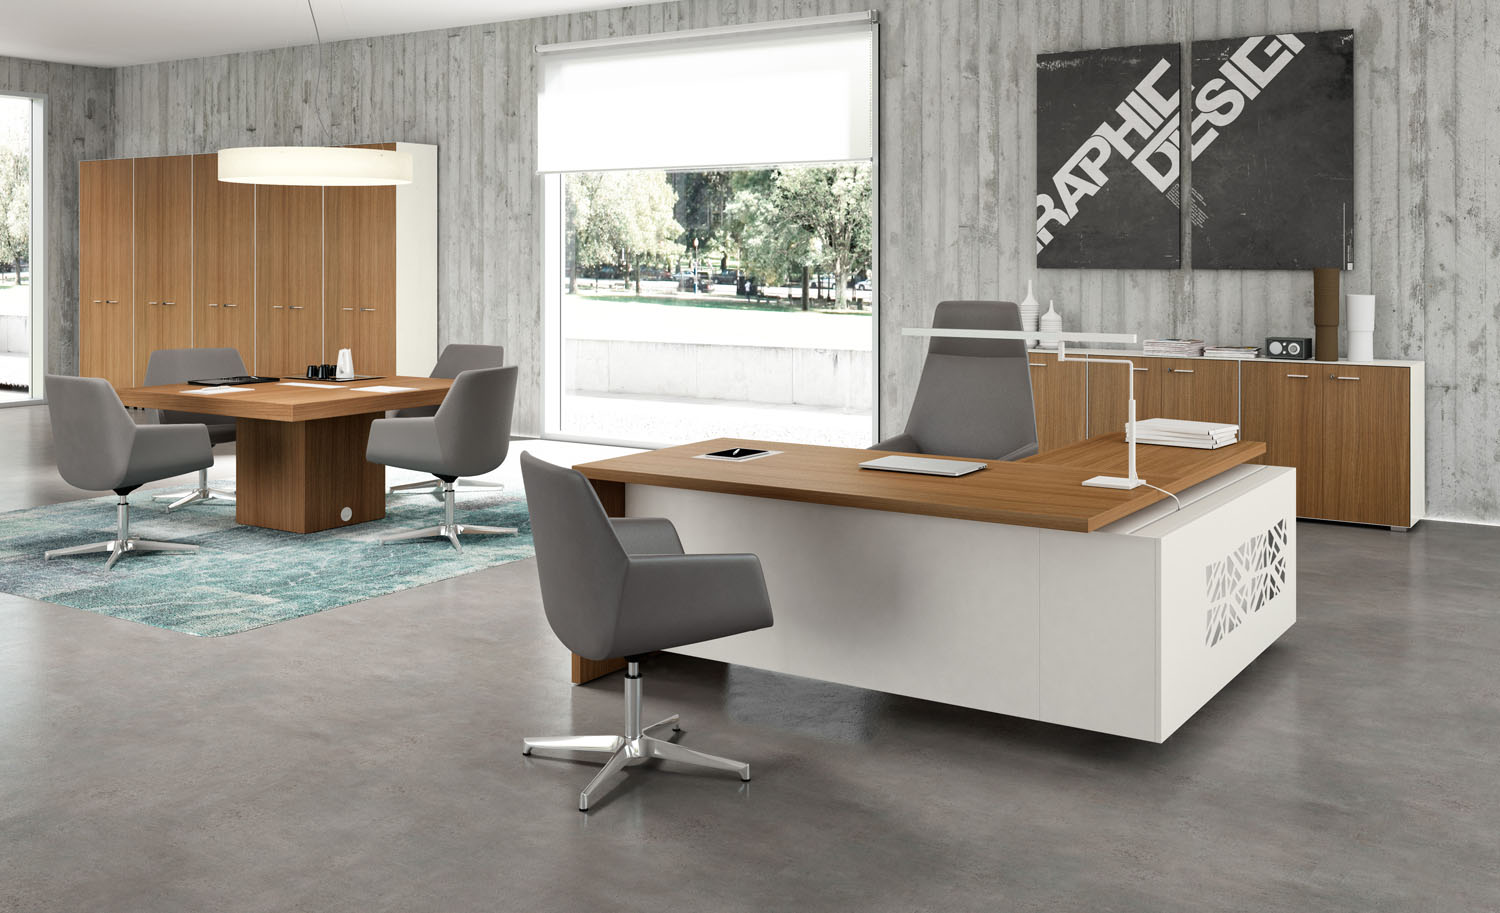 A contemporary office desk doesn't need a lot of bells and whistles if it's the perfect fit for your personality.